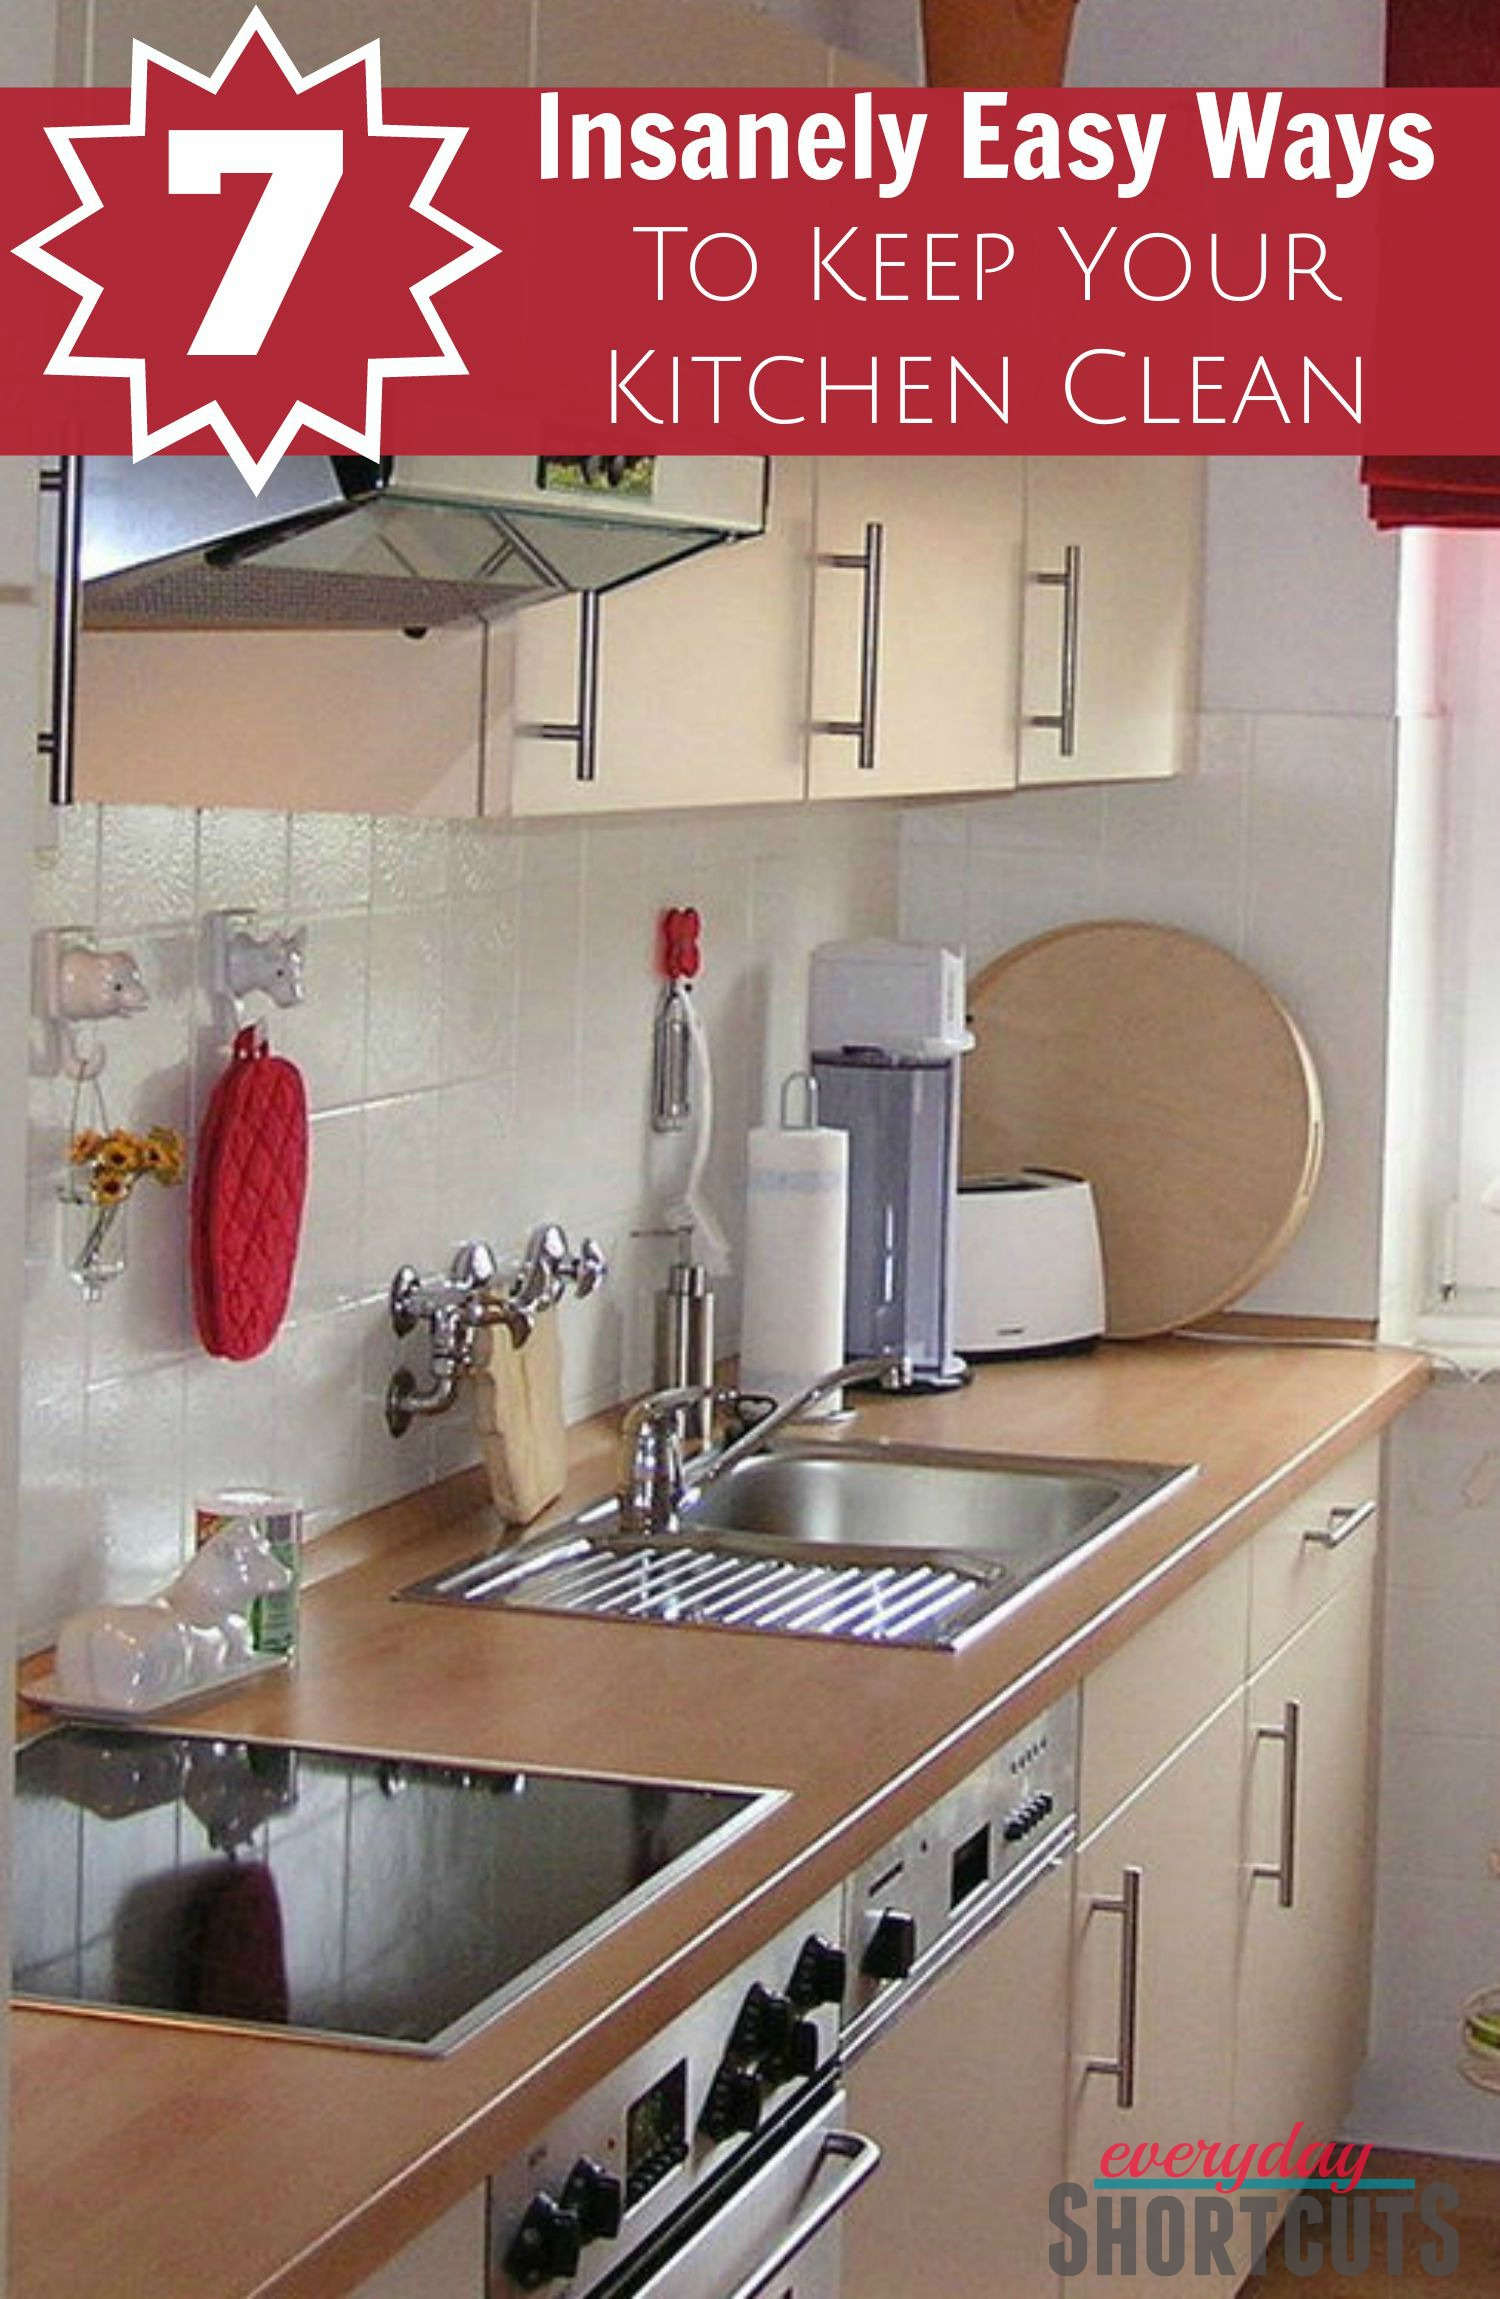 easy way to clean kitchen cabinets 7 insanely easy ways to keep your kitchen clean everyday 9640